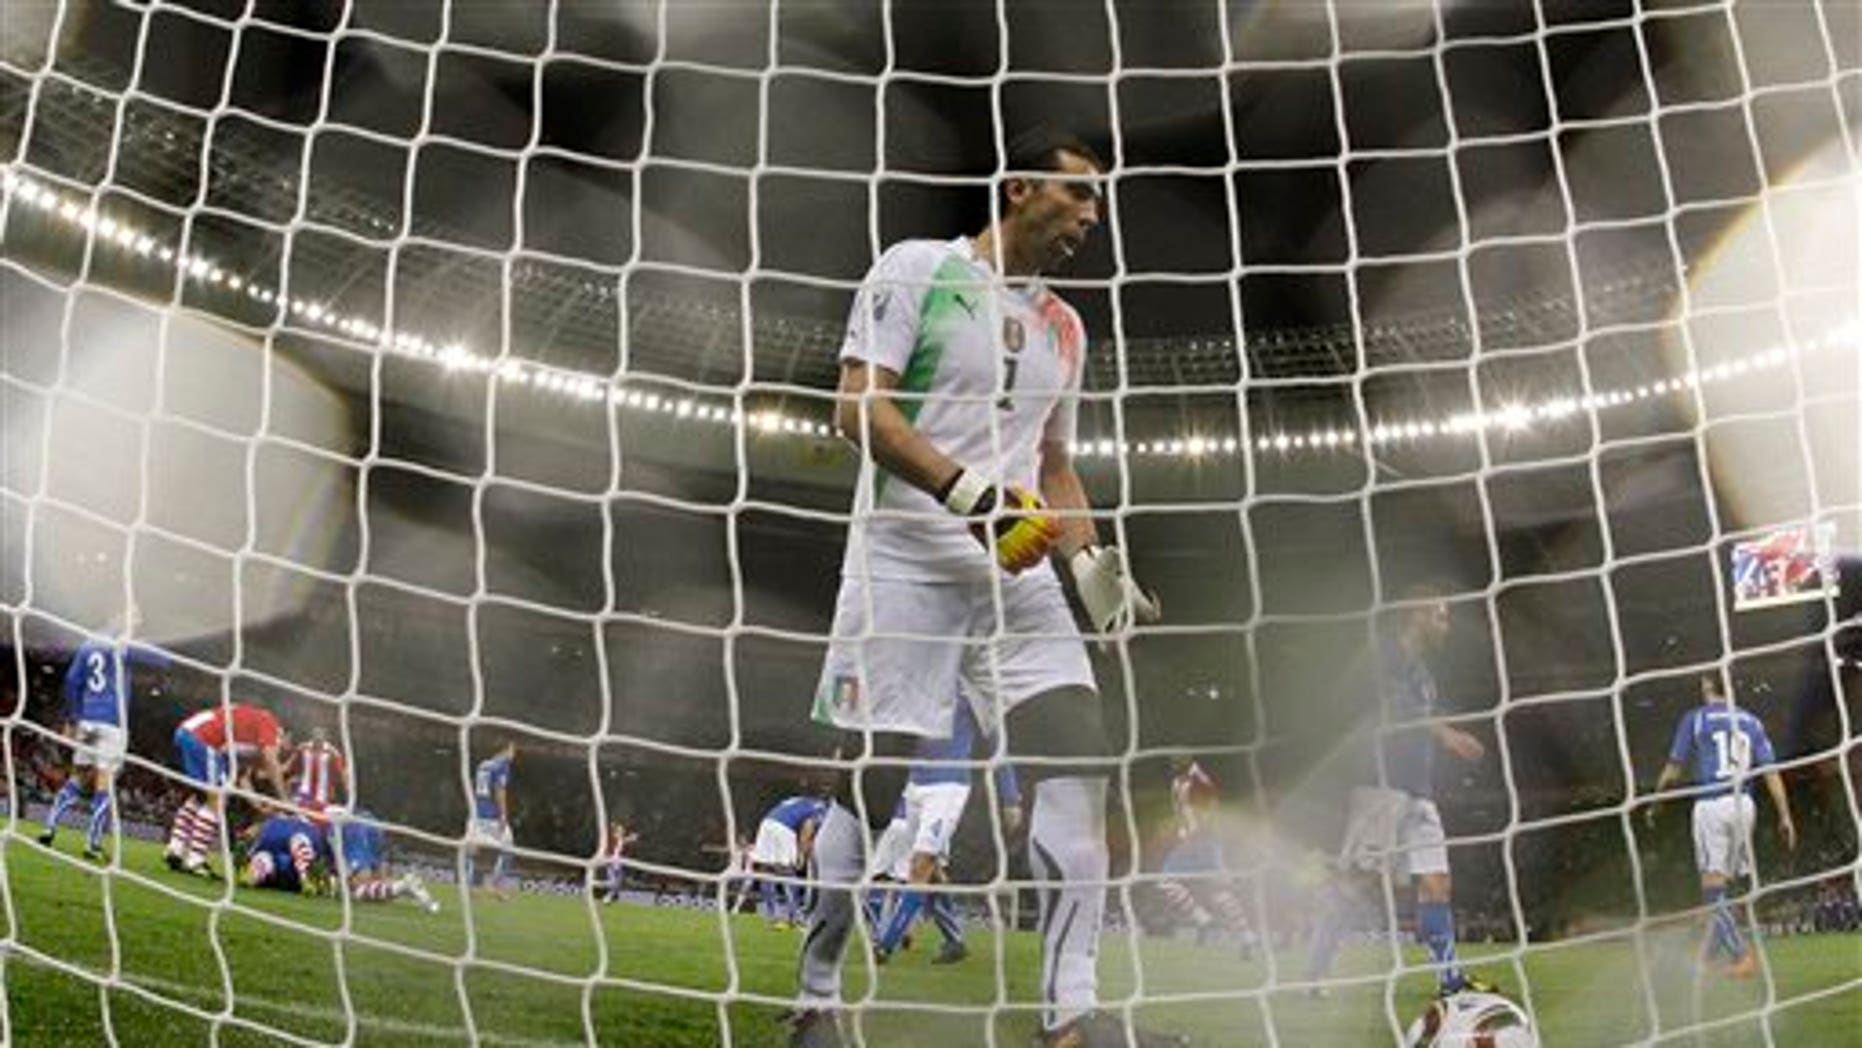 Italy goalkeeper Gianluigi Buffon, center, goes to pick up the ball after a penalty goal by Paraguay's Antolin Alcaraz, as fellow team members pile on top of him to celebrate, at left, during the World Cup group F soccer match between Italy and Paraguay in Cape Town, South Africa, Monday, June 14, 2010.  (AP Photo/Roberto Candia)